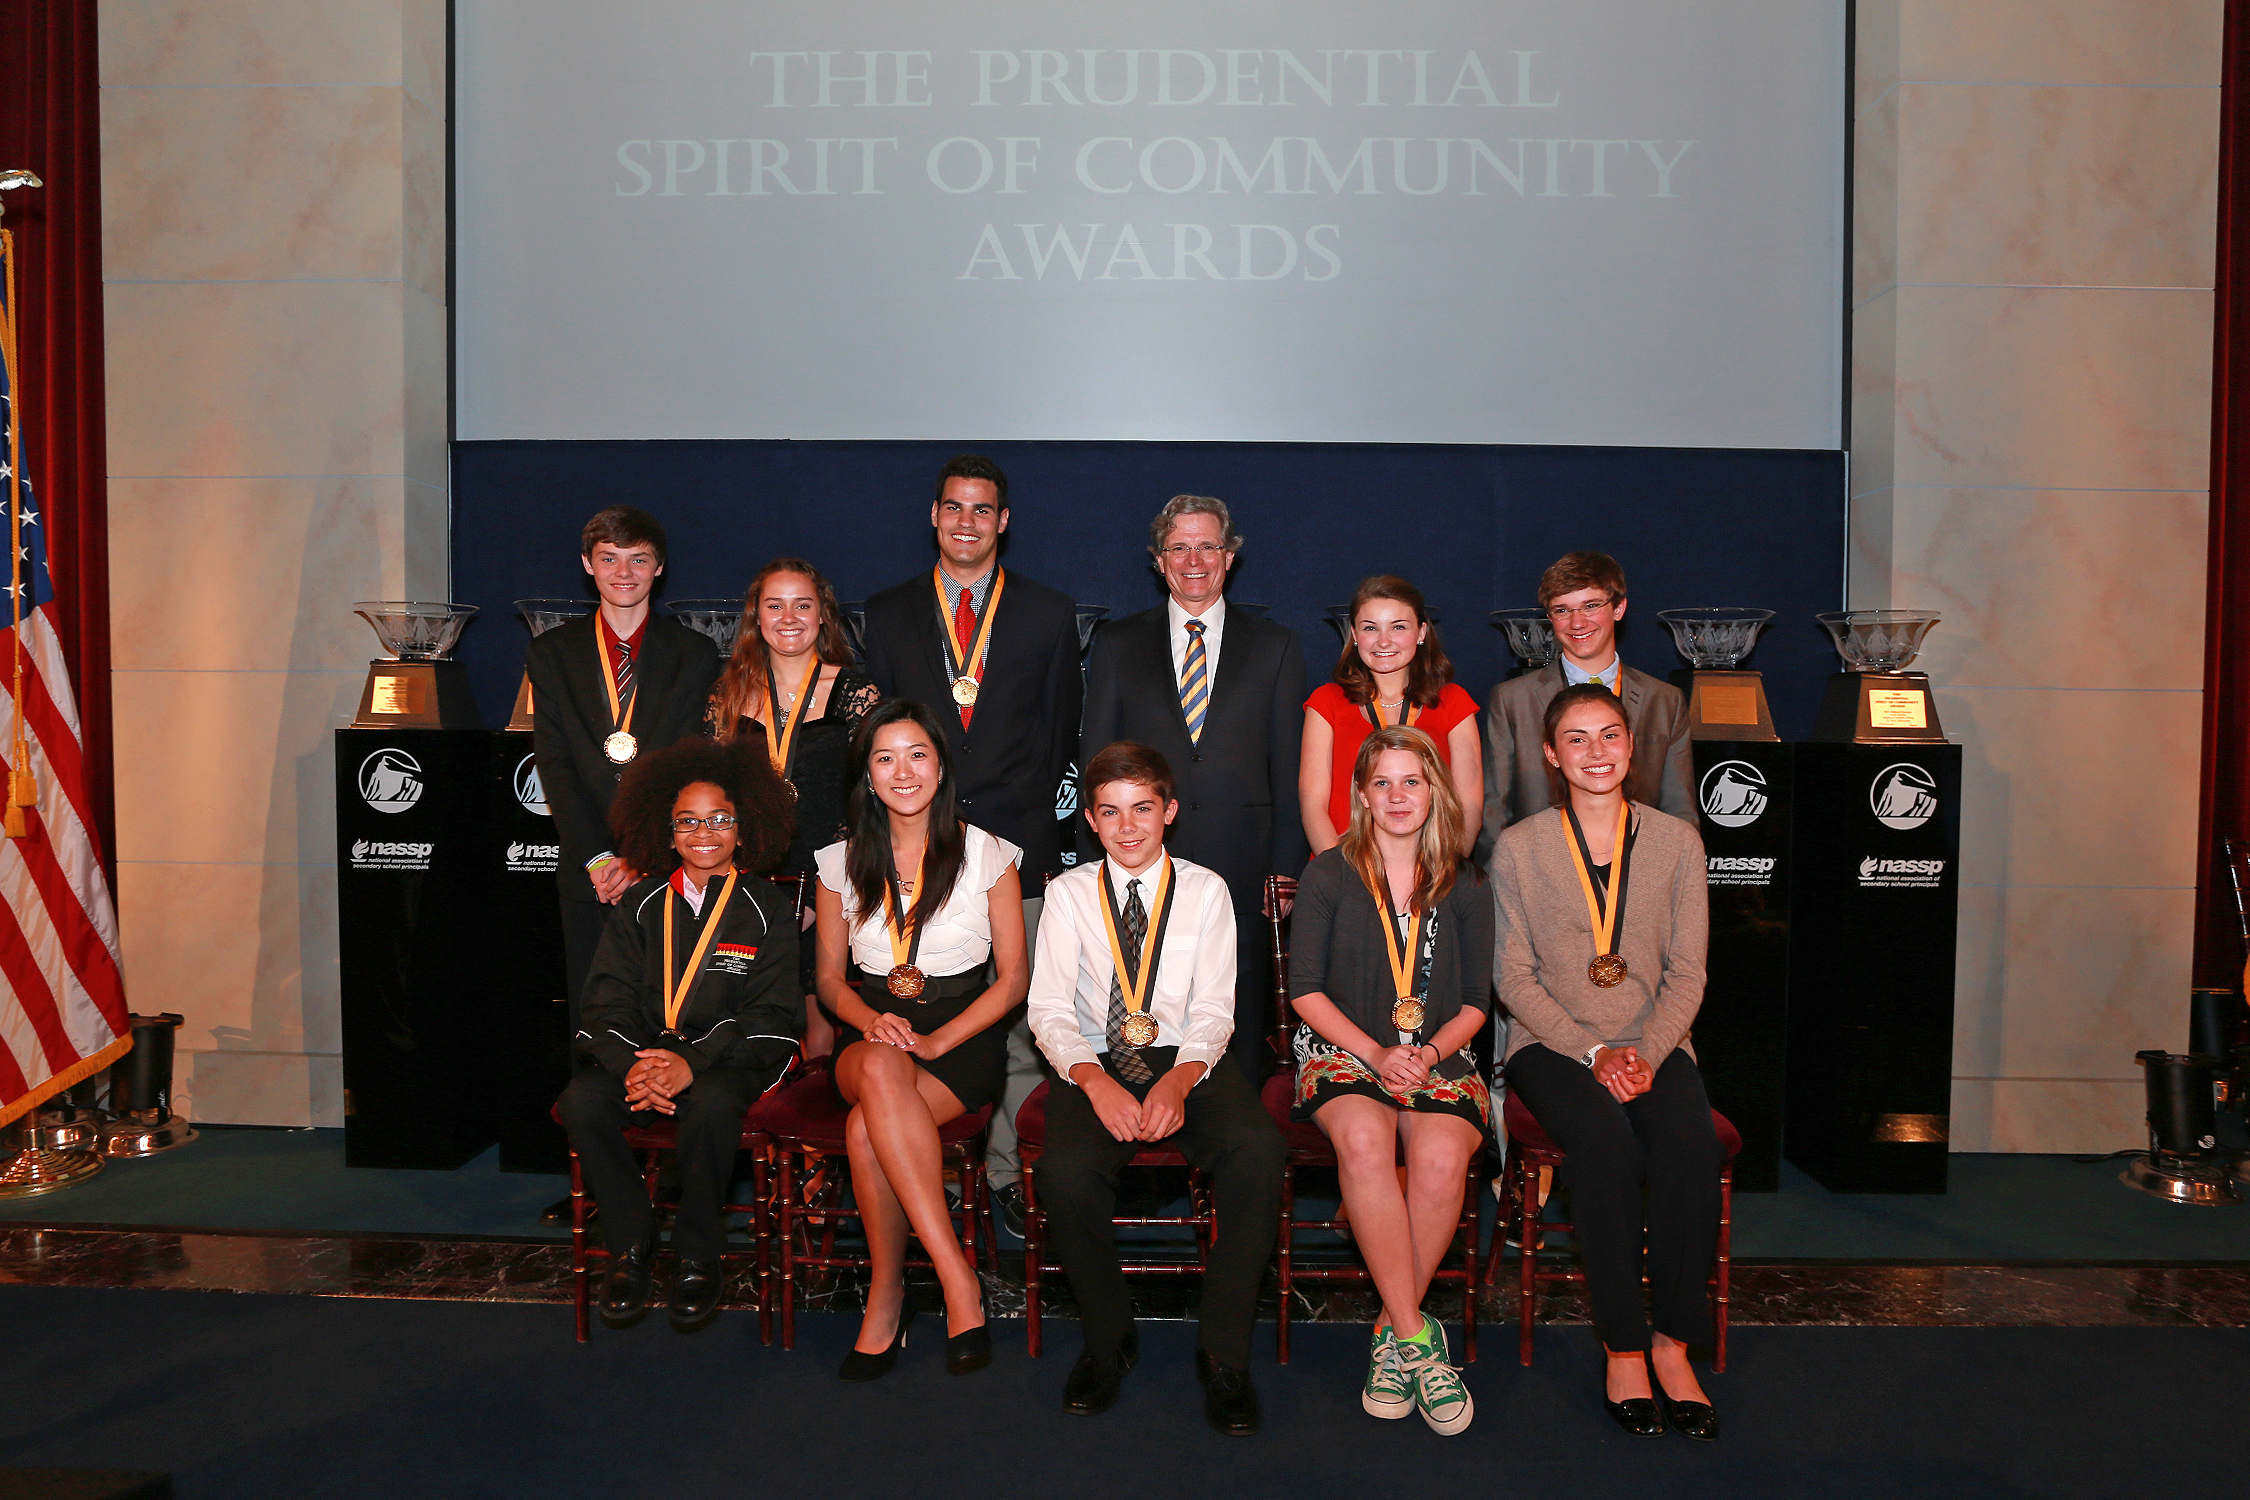 2013 Prudential Spirit of Community Awards.